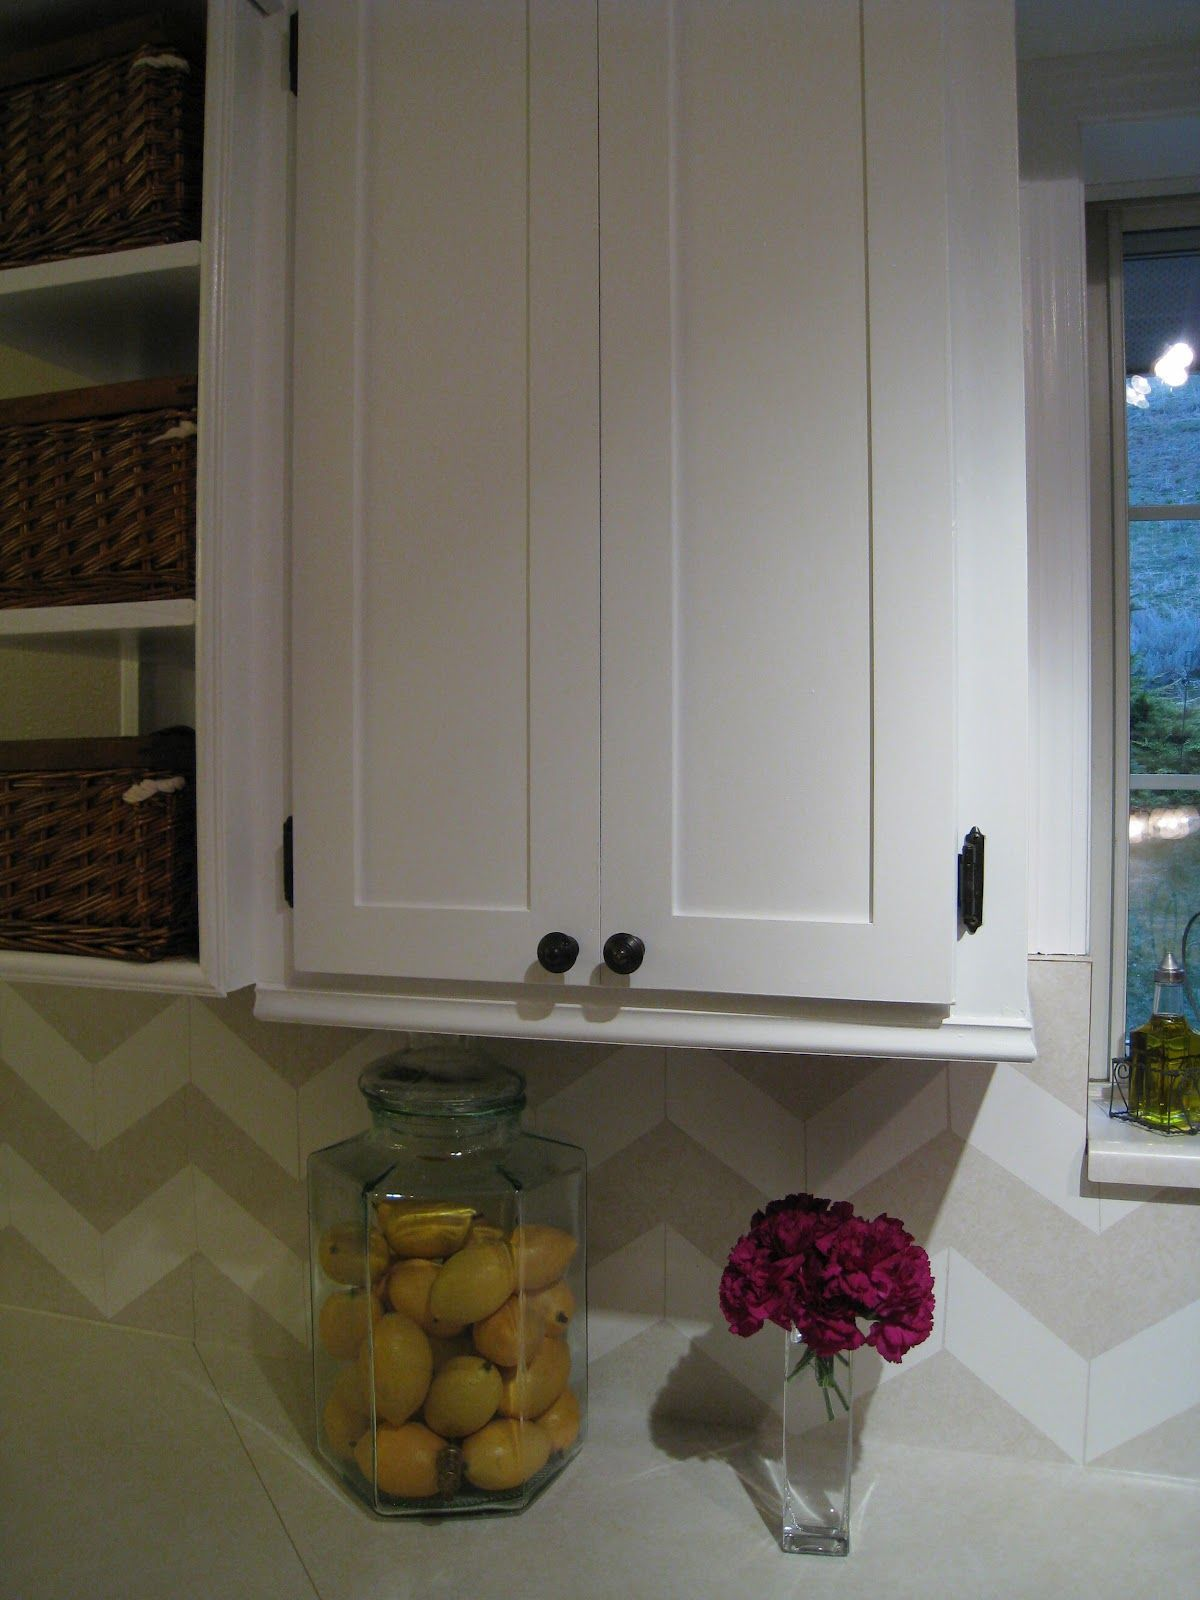 Poplar For Cabinets Easypeasy Grandma Cabinet Door Redo She Filled In The Routed